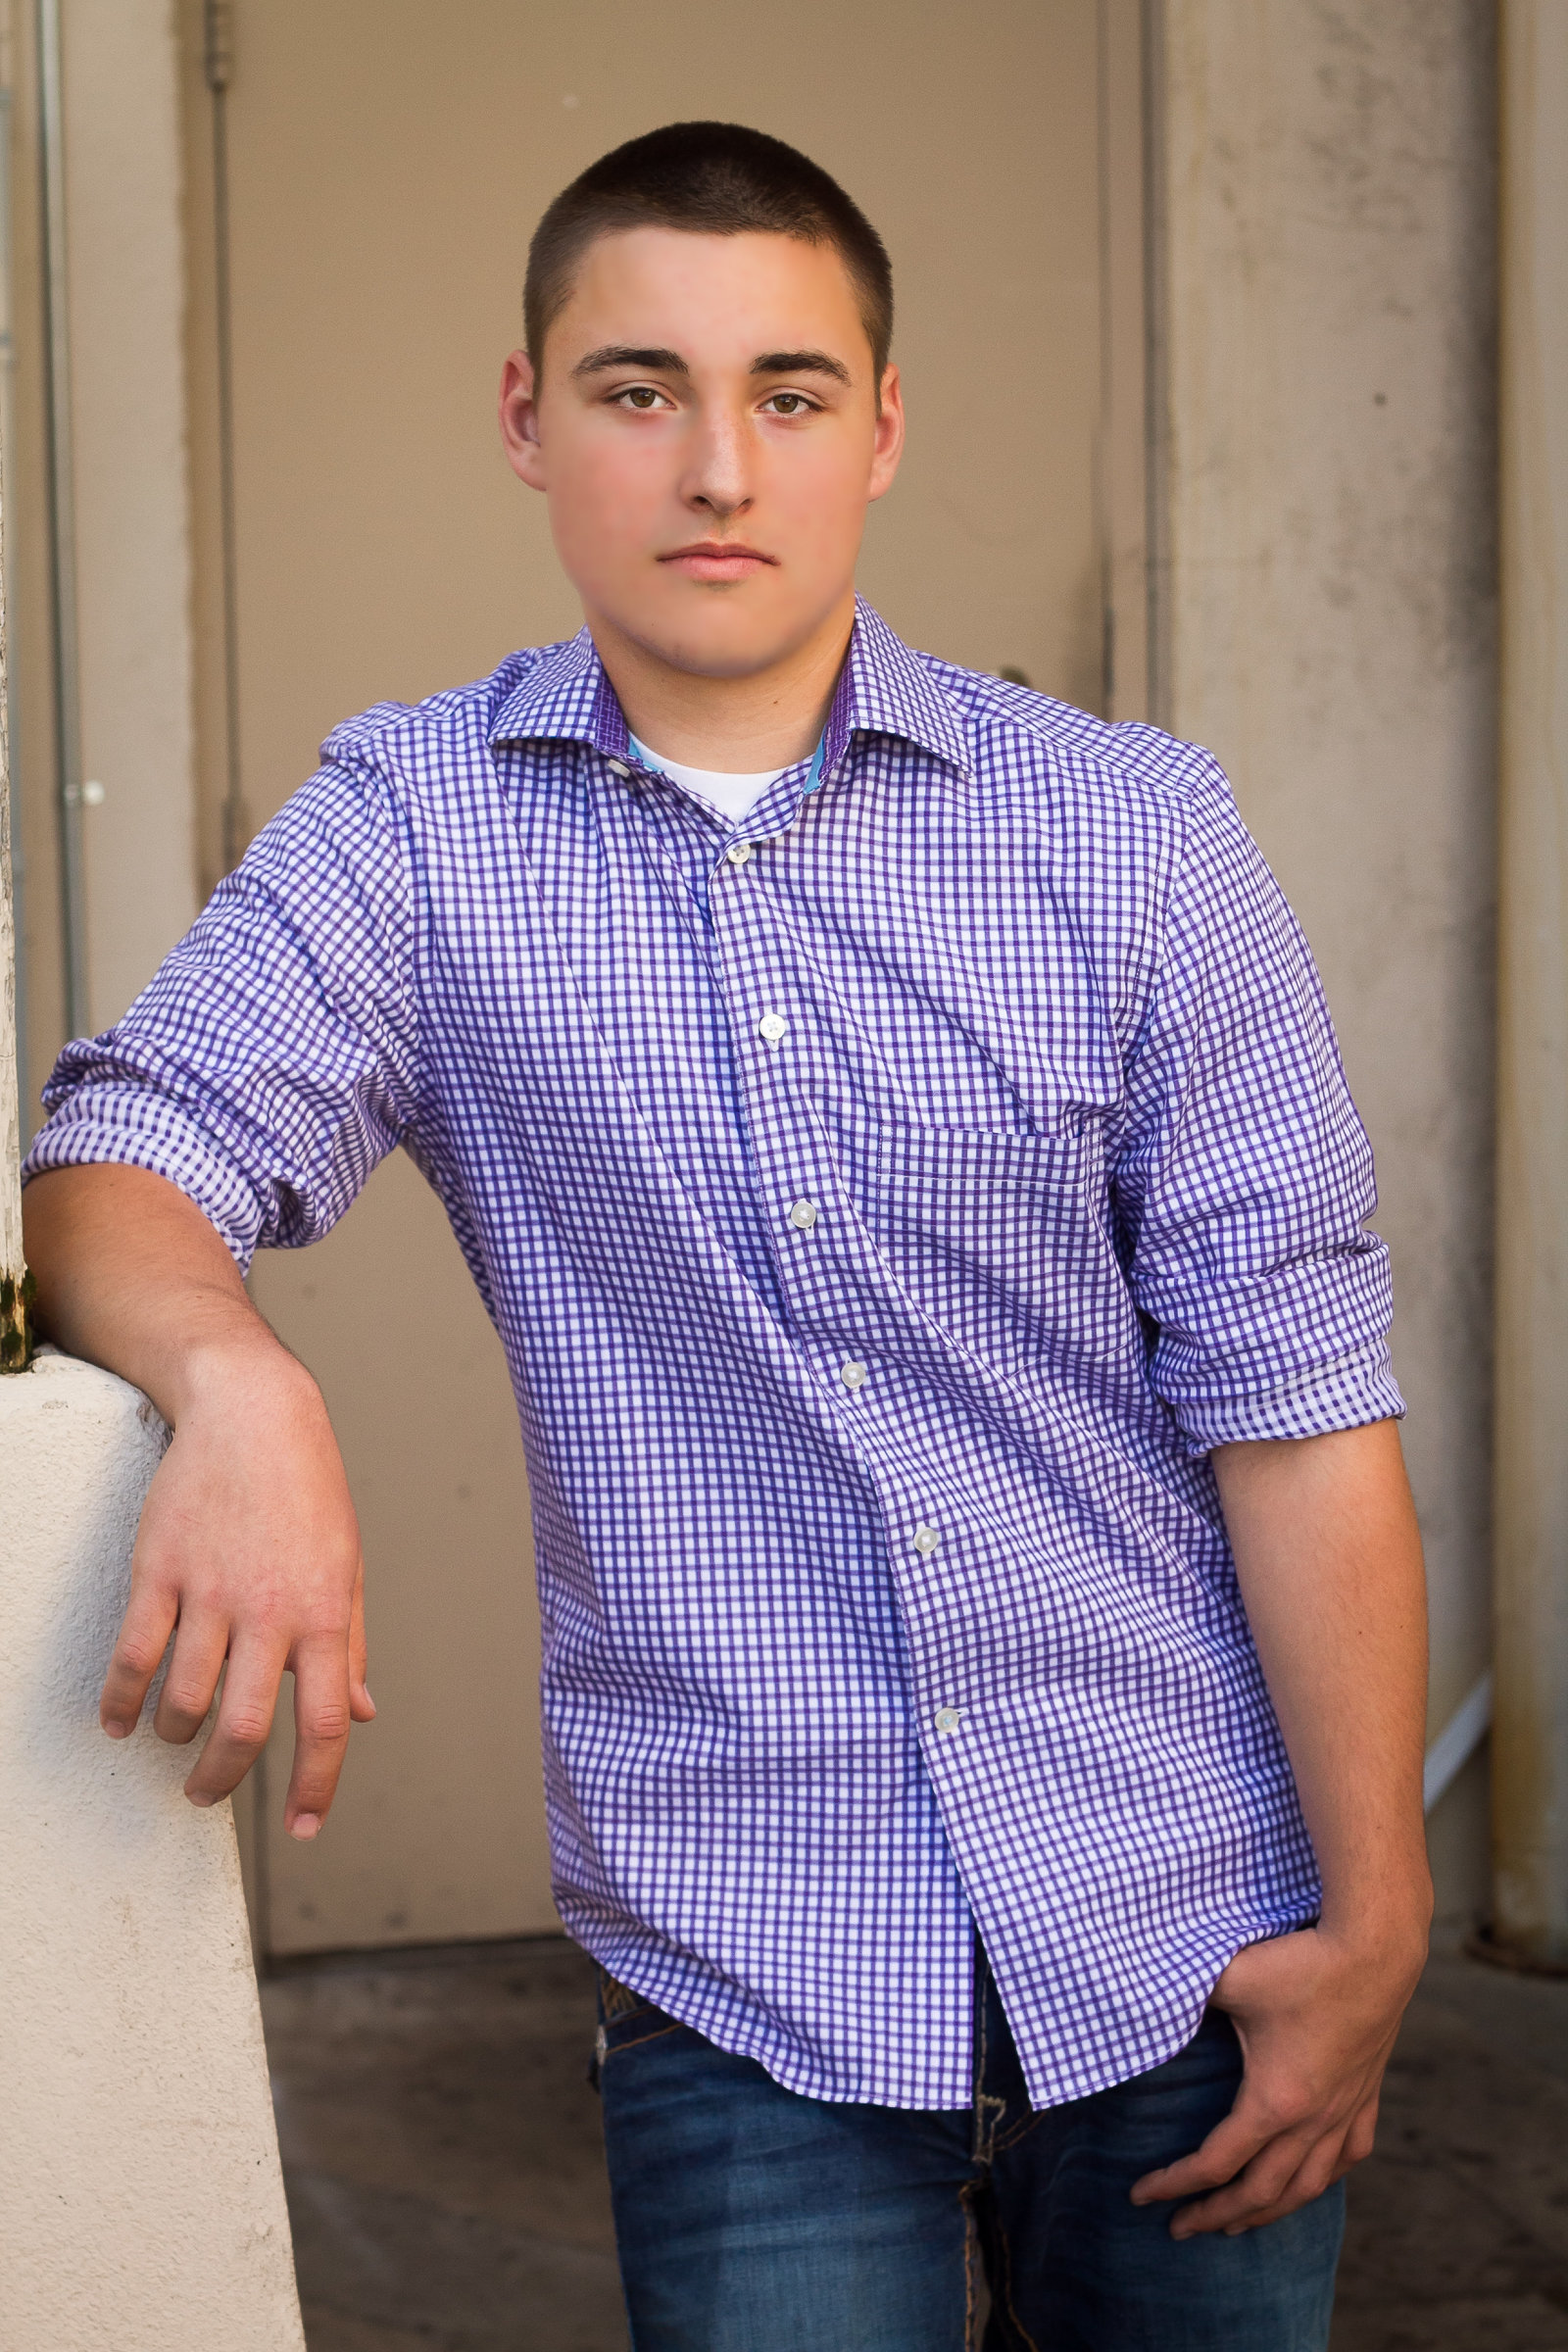 Seniors_Jacob-114